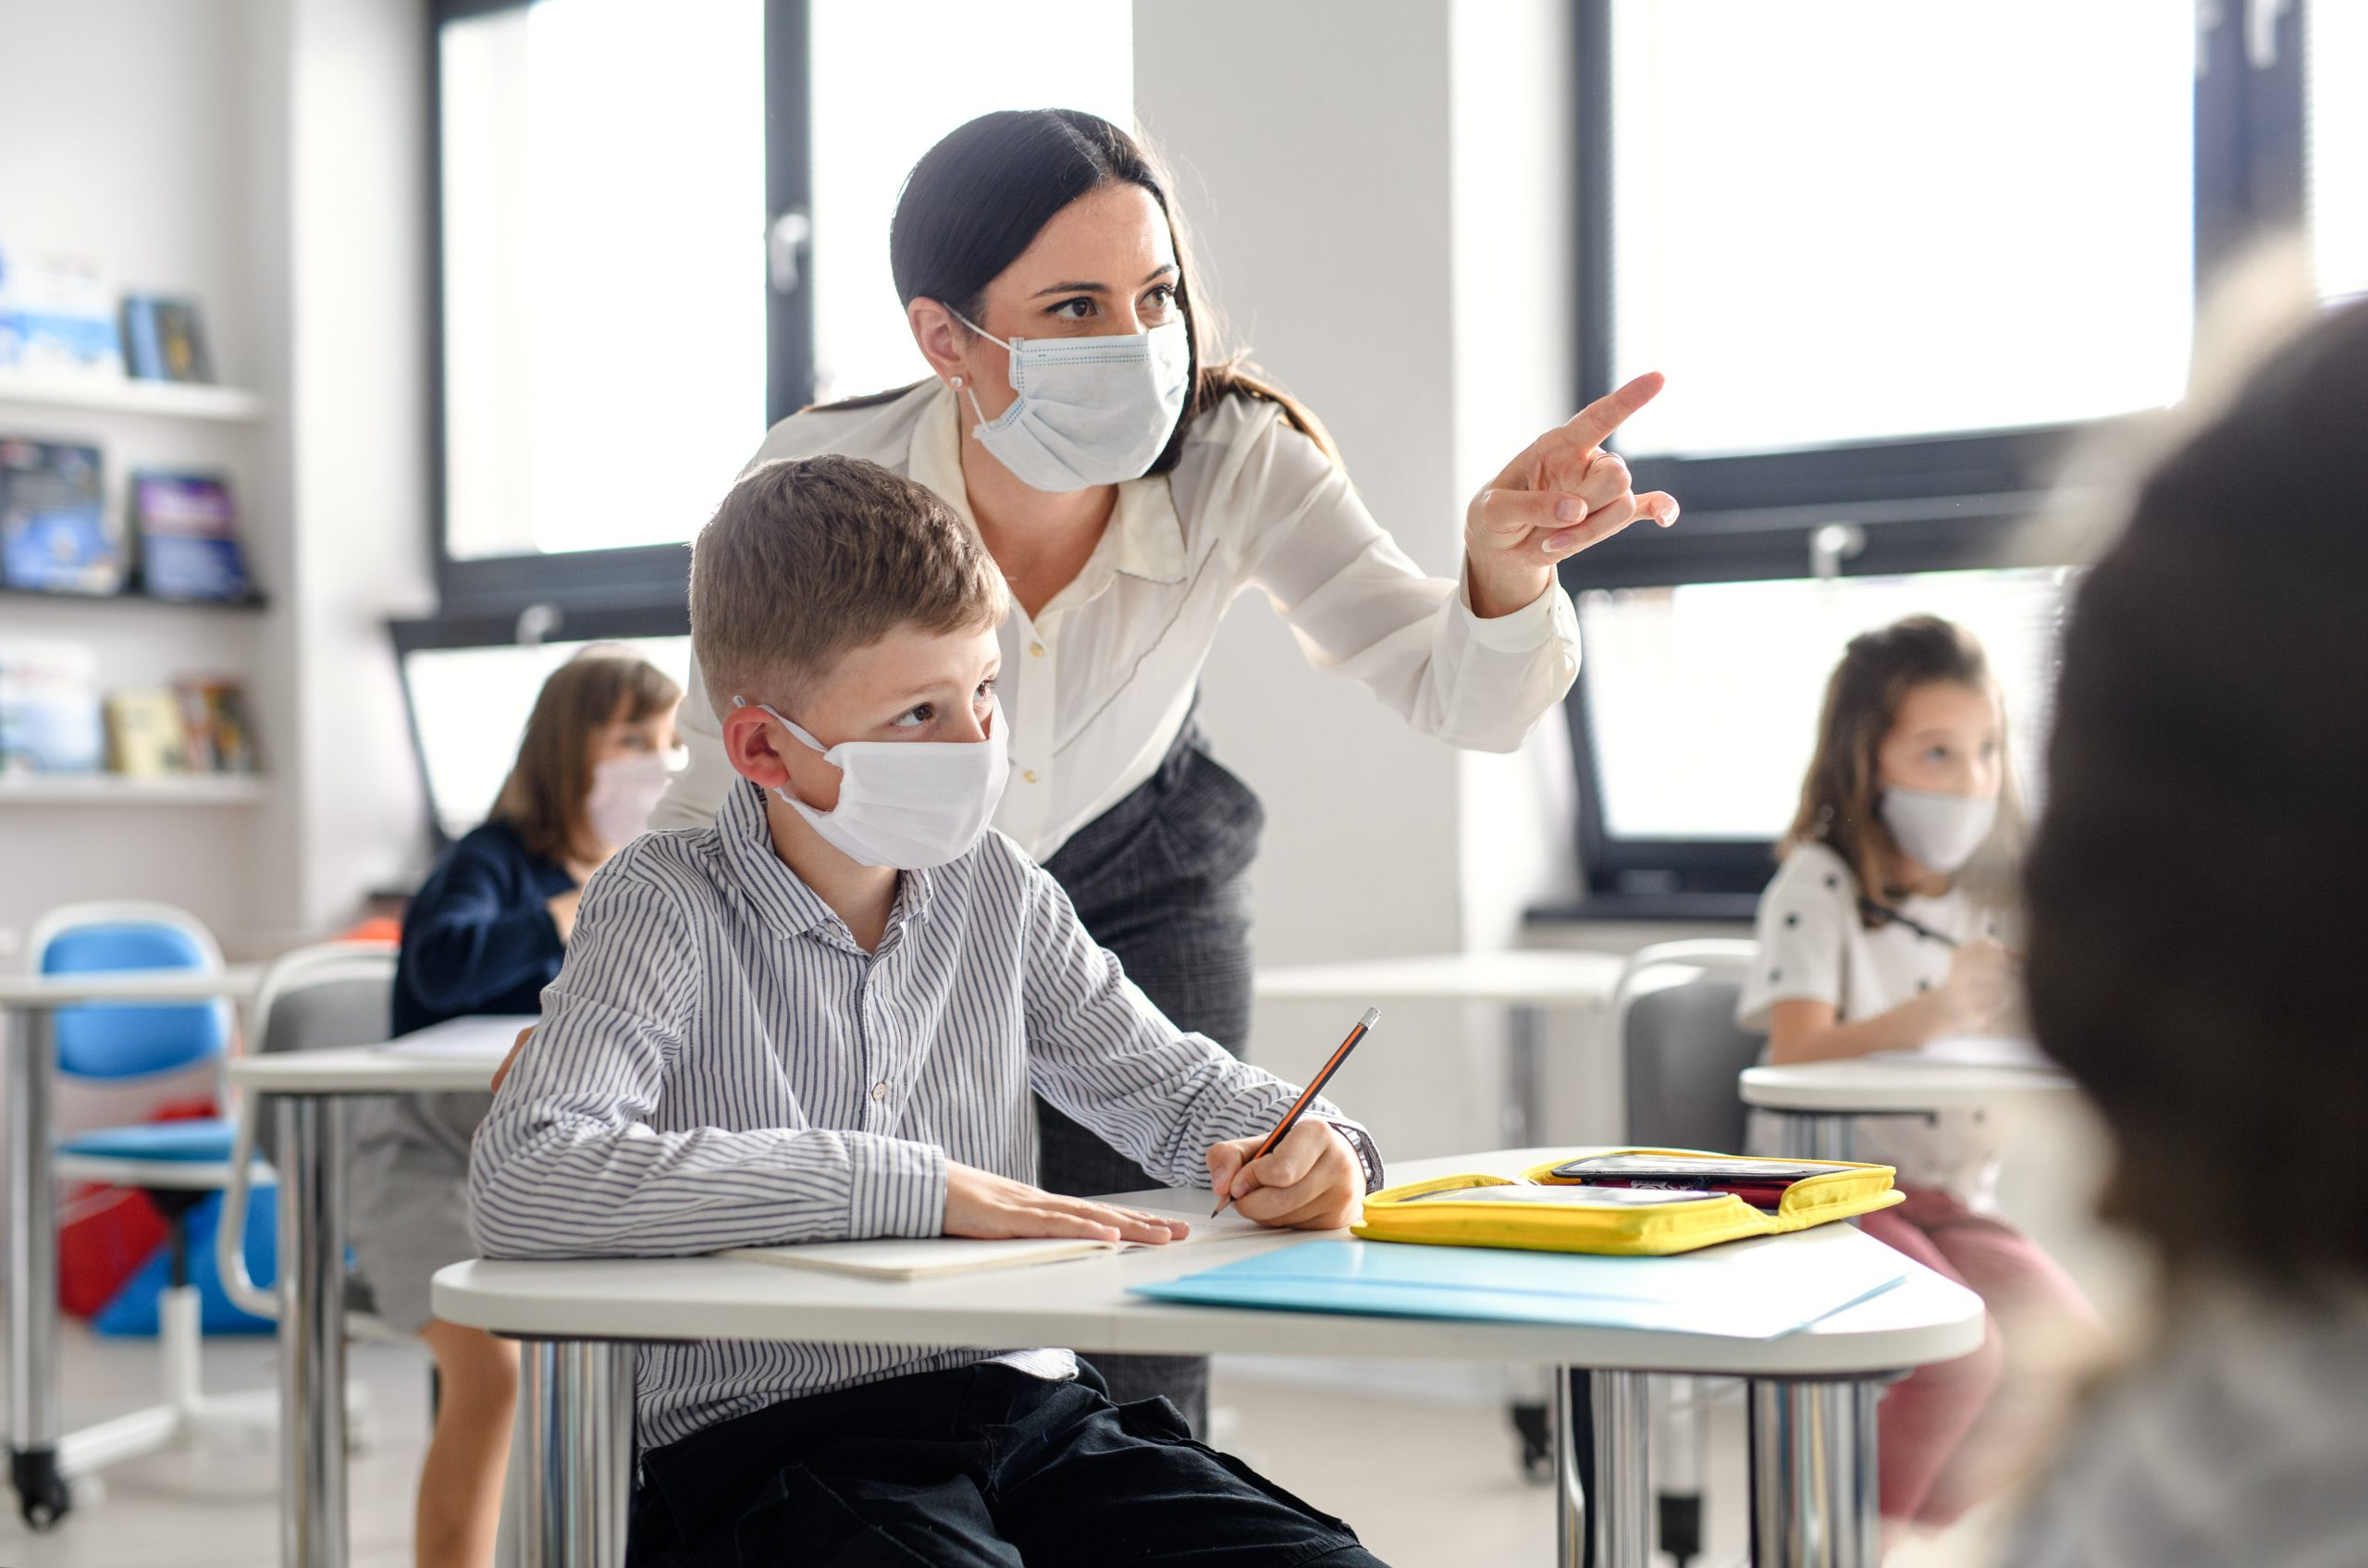 teacher and child wearing masks during lessons